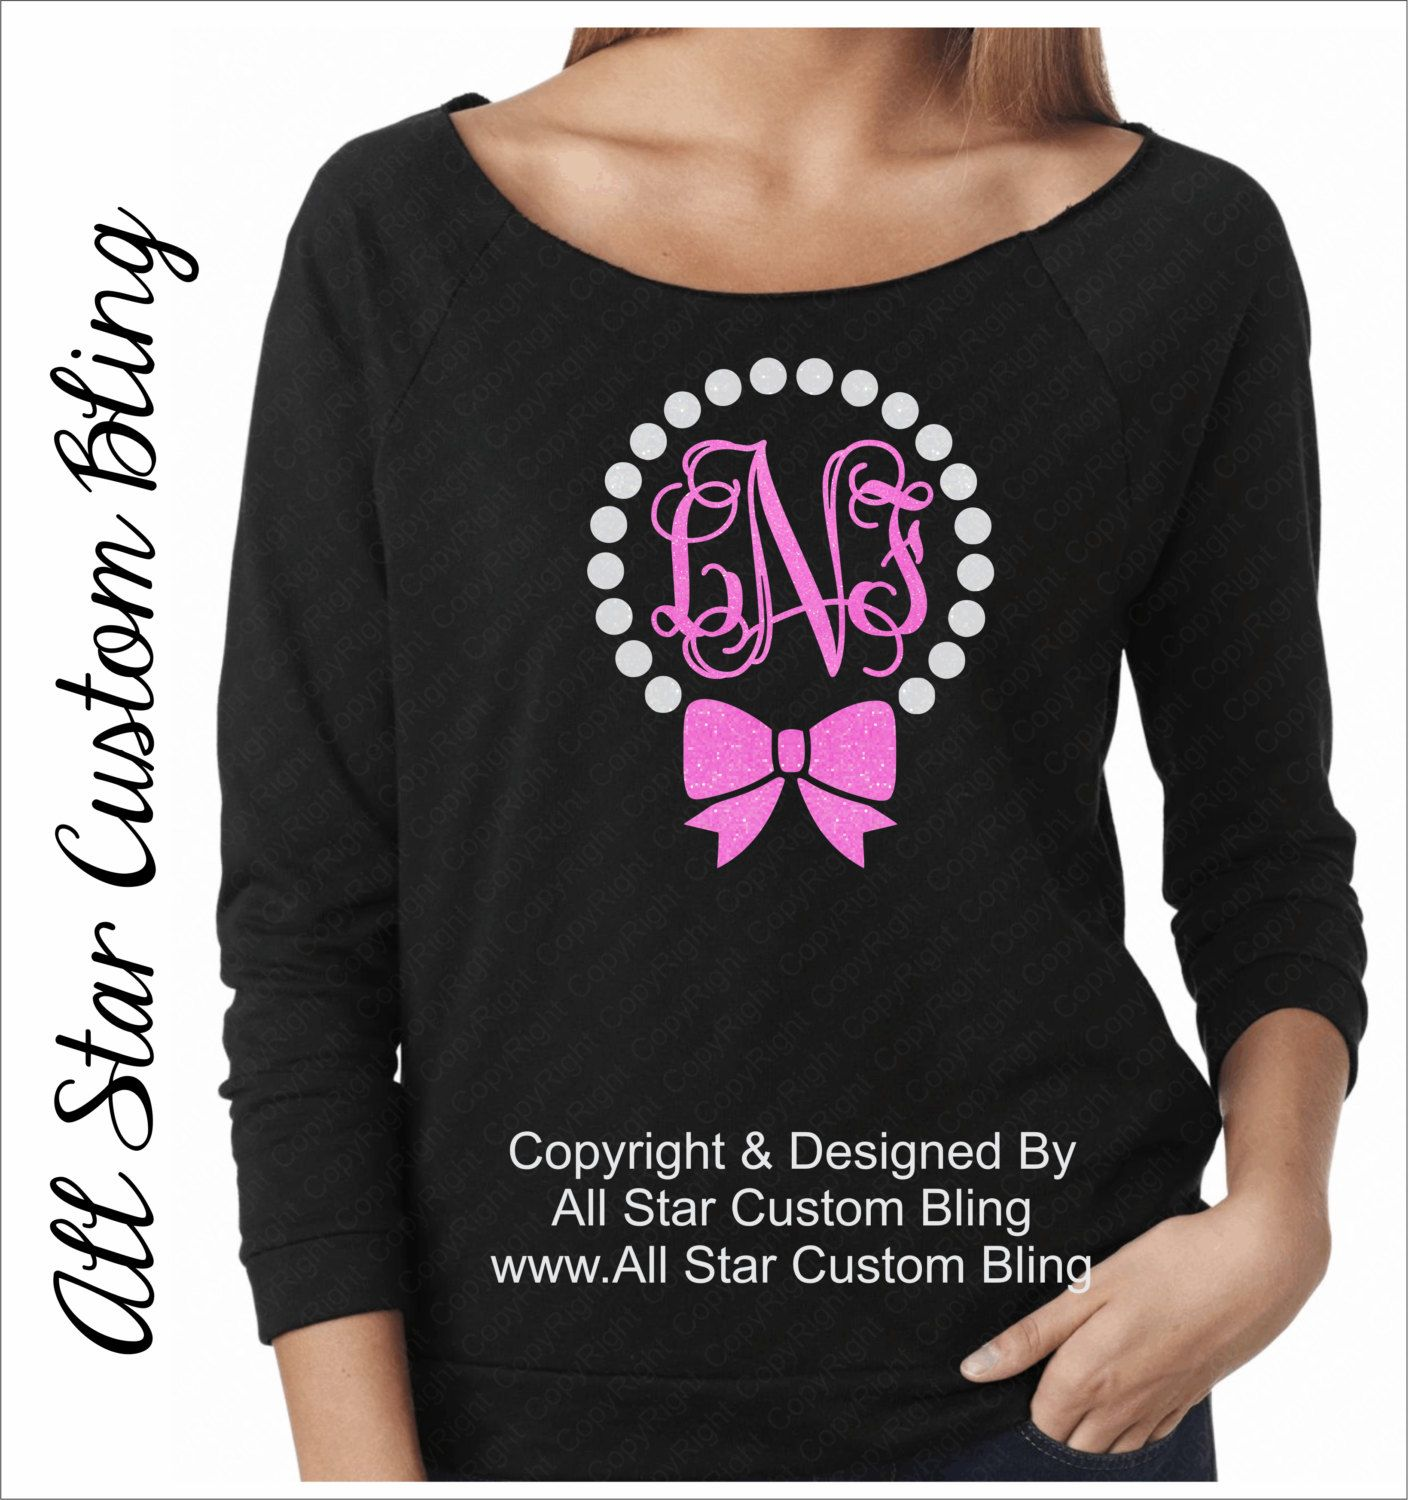 ae846afc6 Custom Glitter T Shirts – EDGE Engineering and Consulting Limited